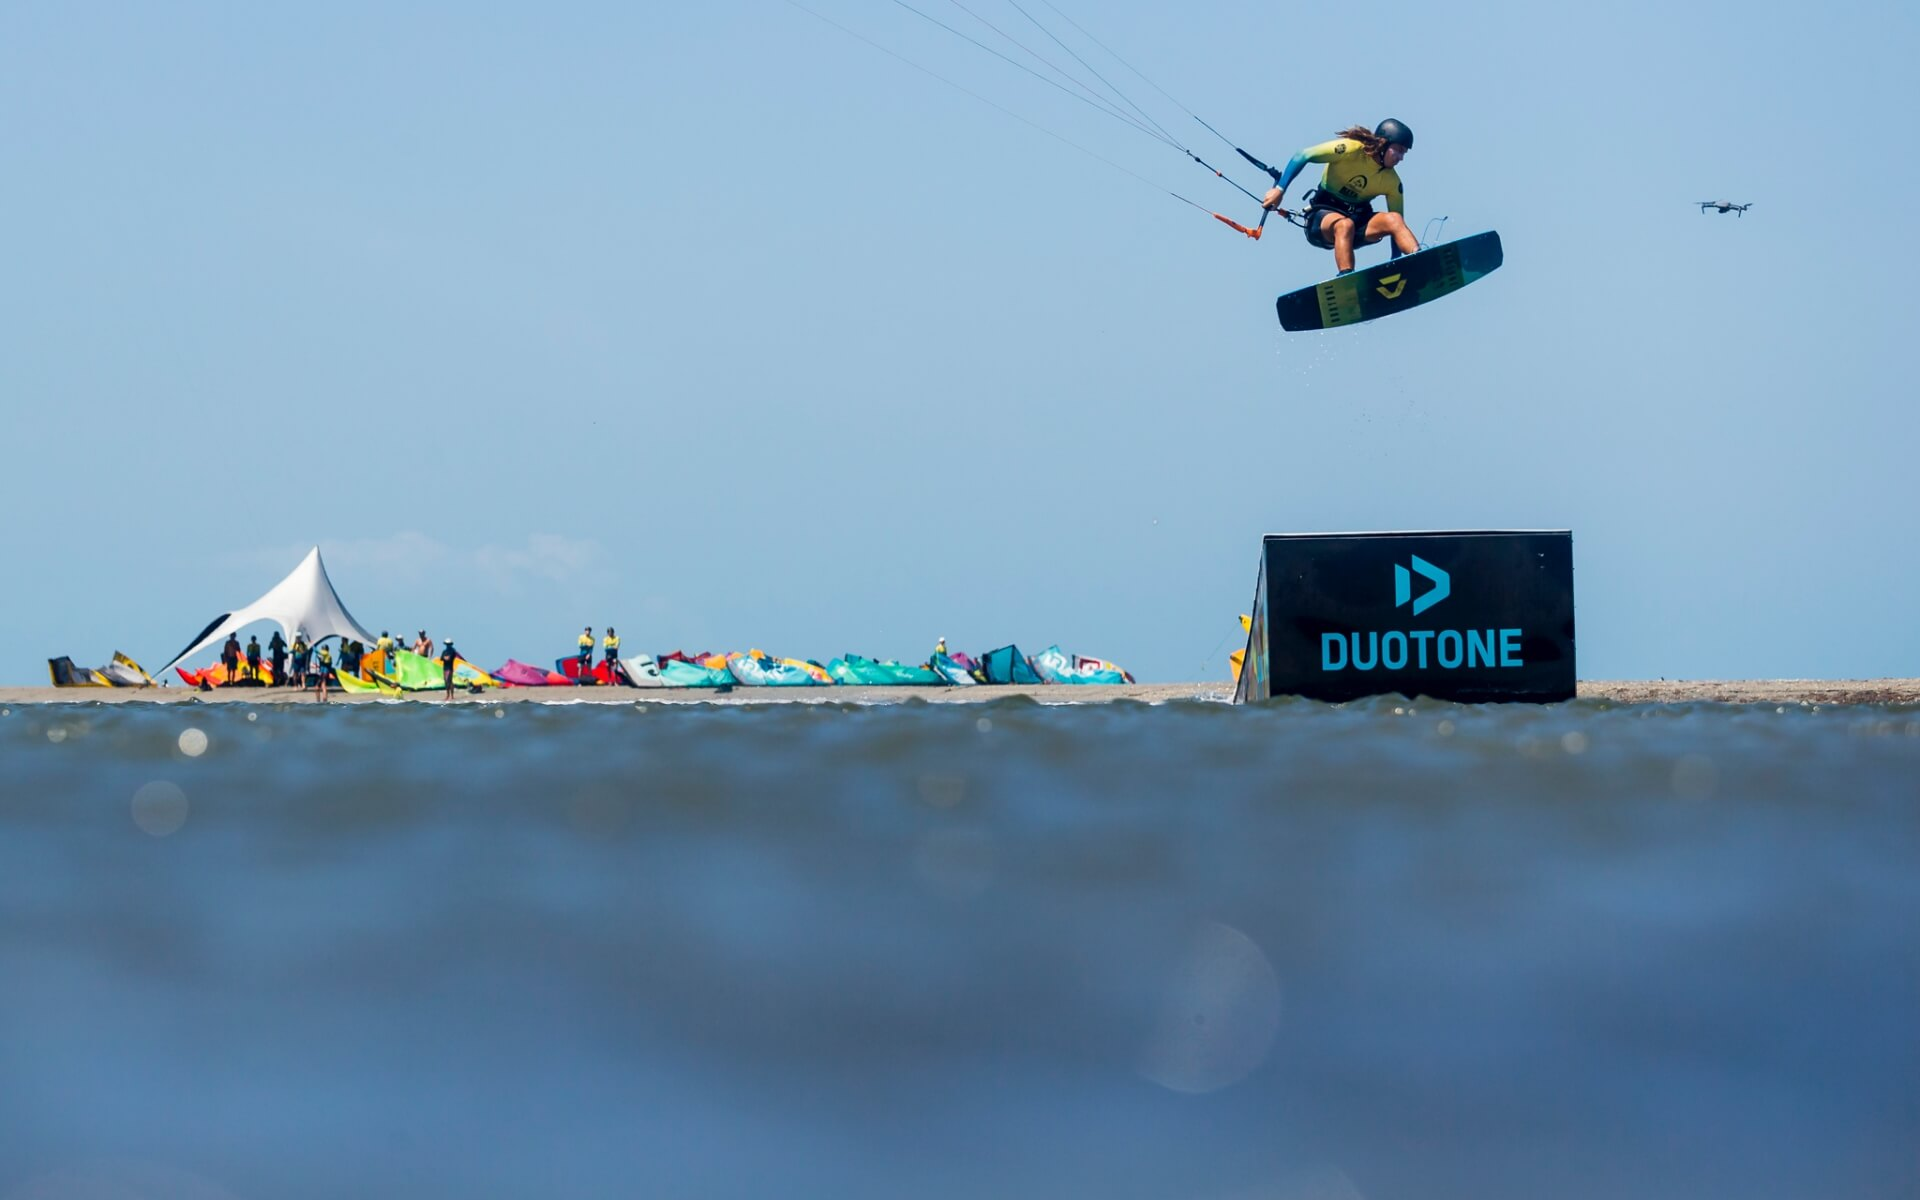 Duotone_Kiteboarding_Team_Aaron_Rosslee_Kite_Mansion_Open